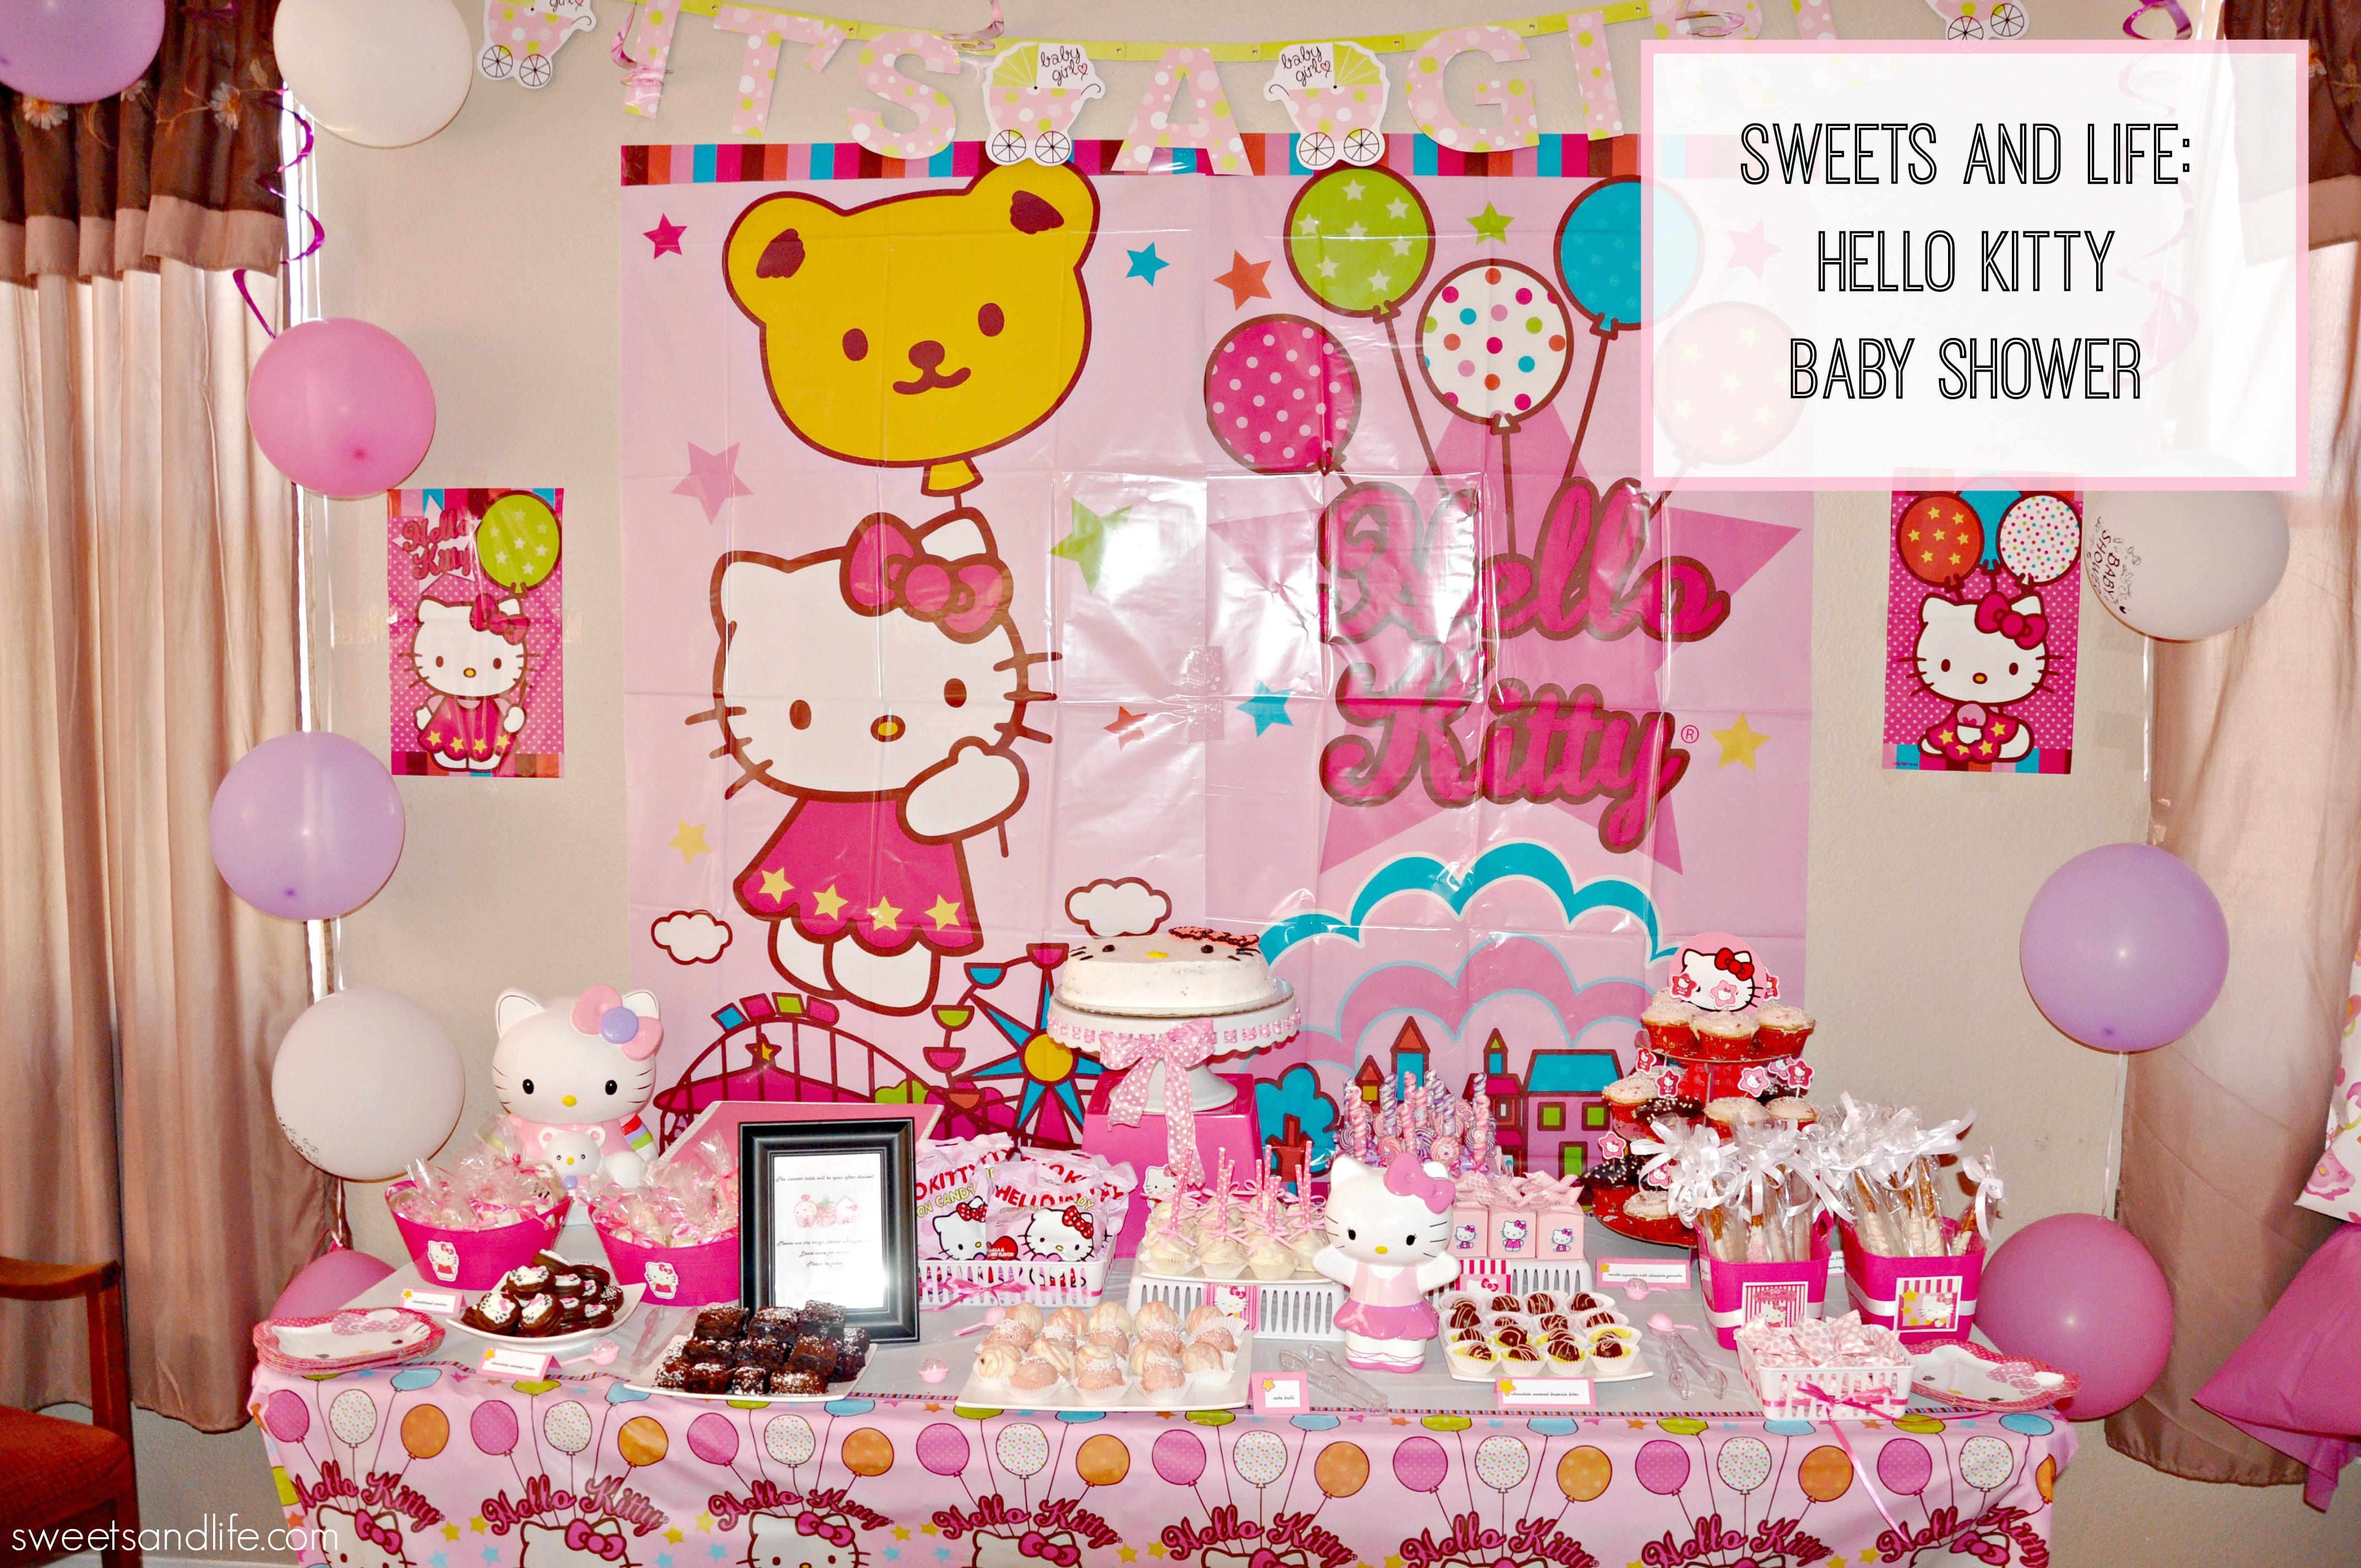 Hello Kitty | Sweets and Life